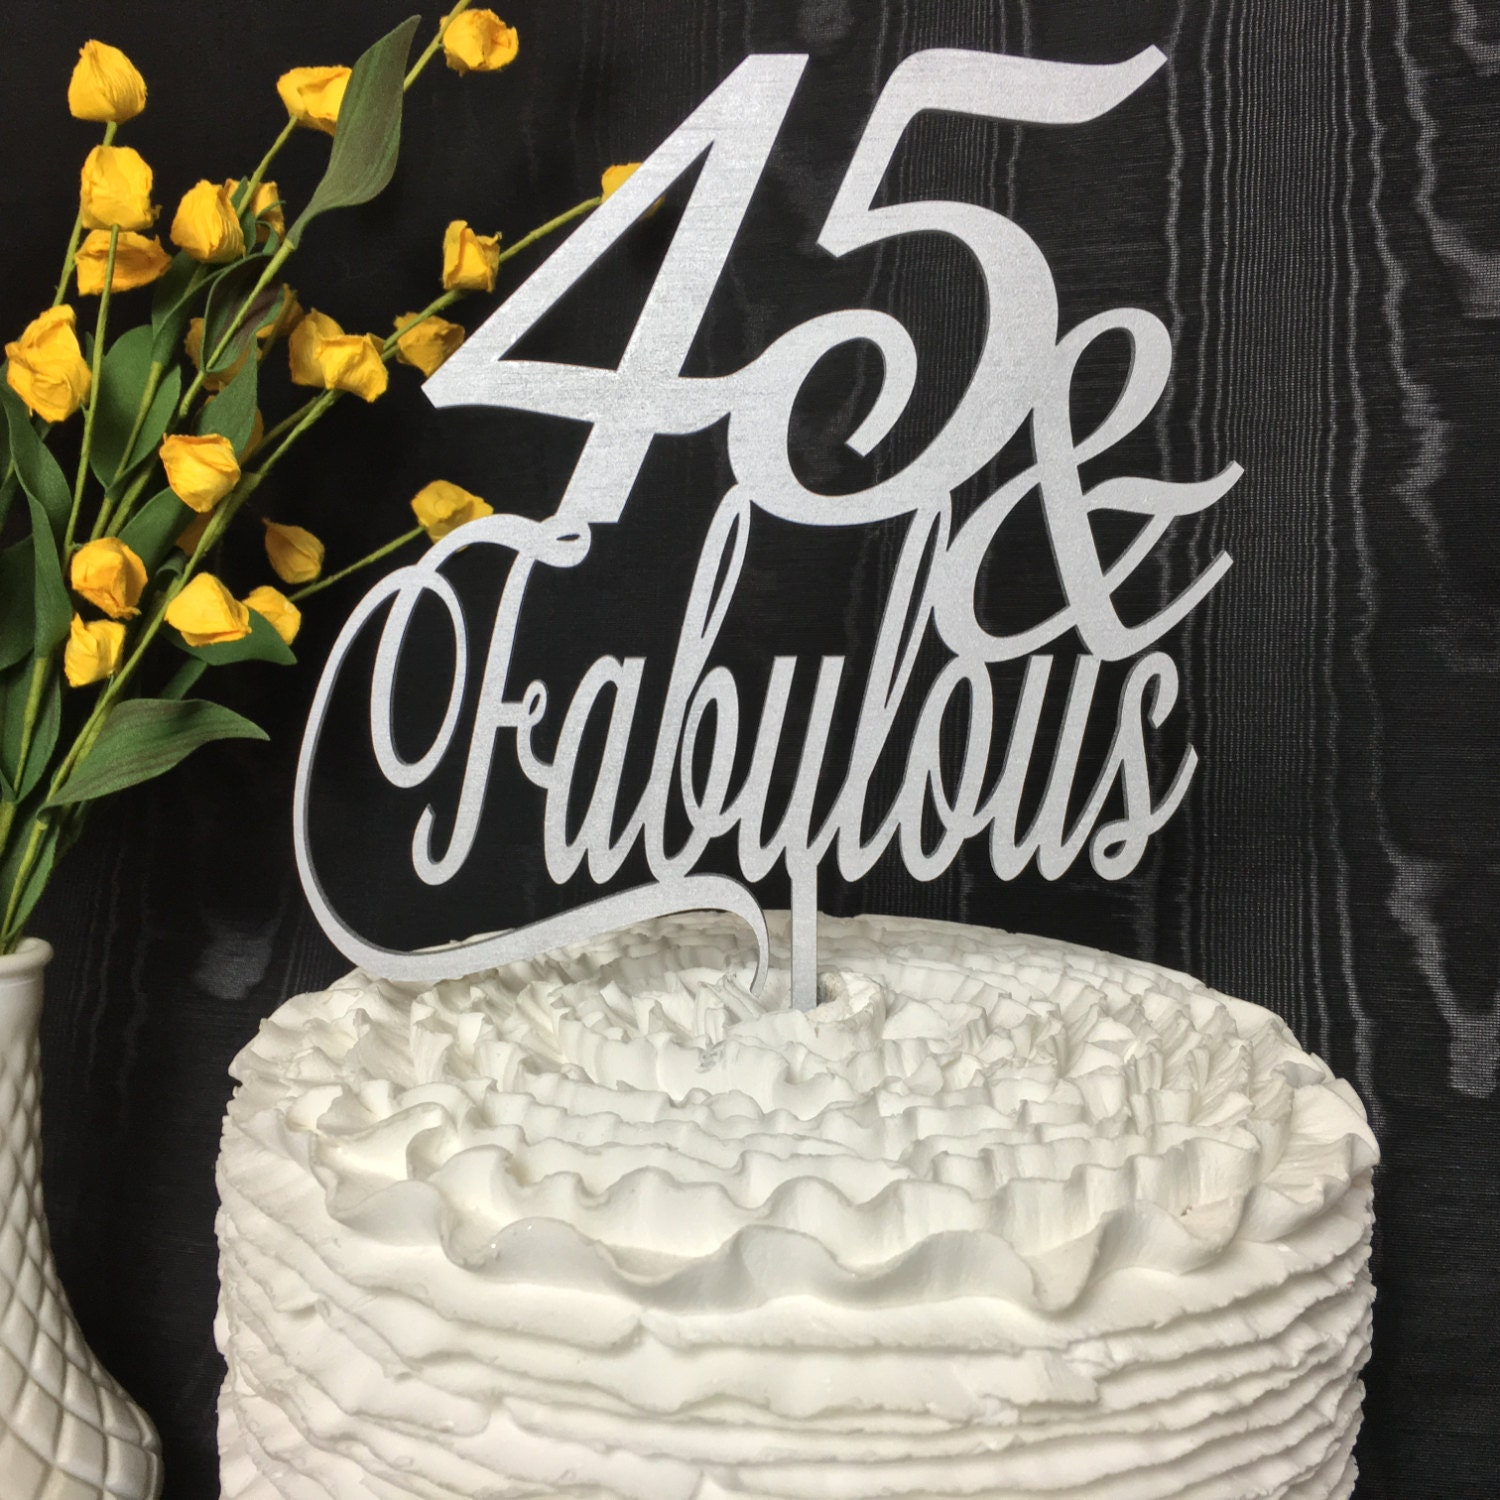 45th Cake Topper 45 Fabulous Cake Topper 45th Birthday